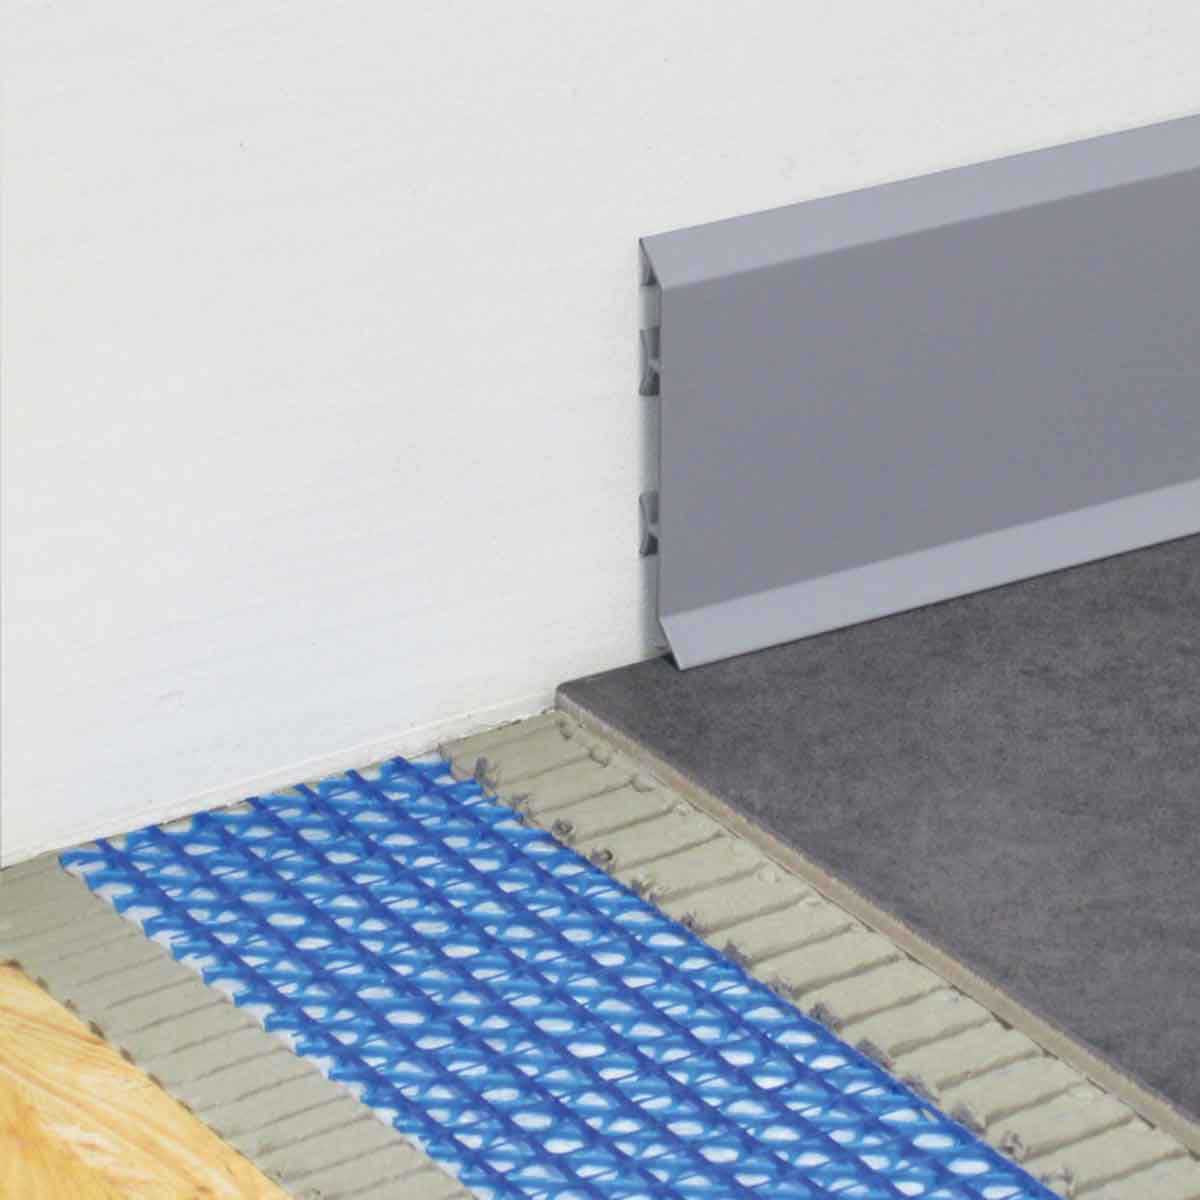 Blanke Permat with Tile and Wall Trims